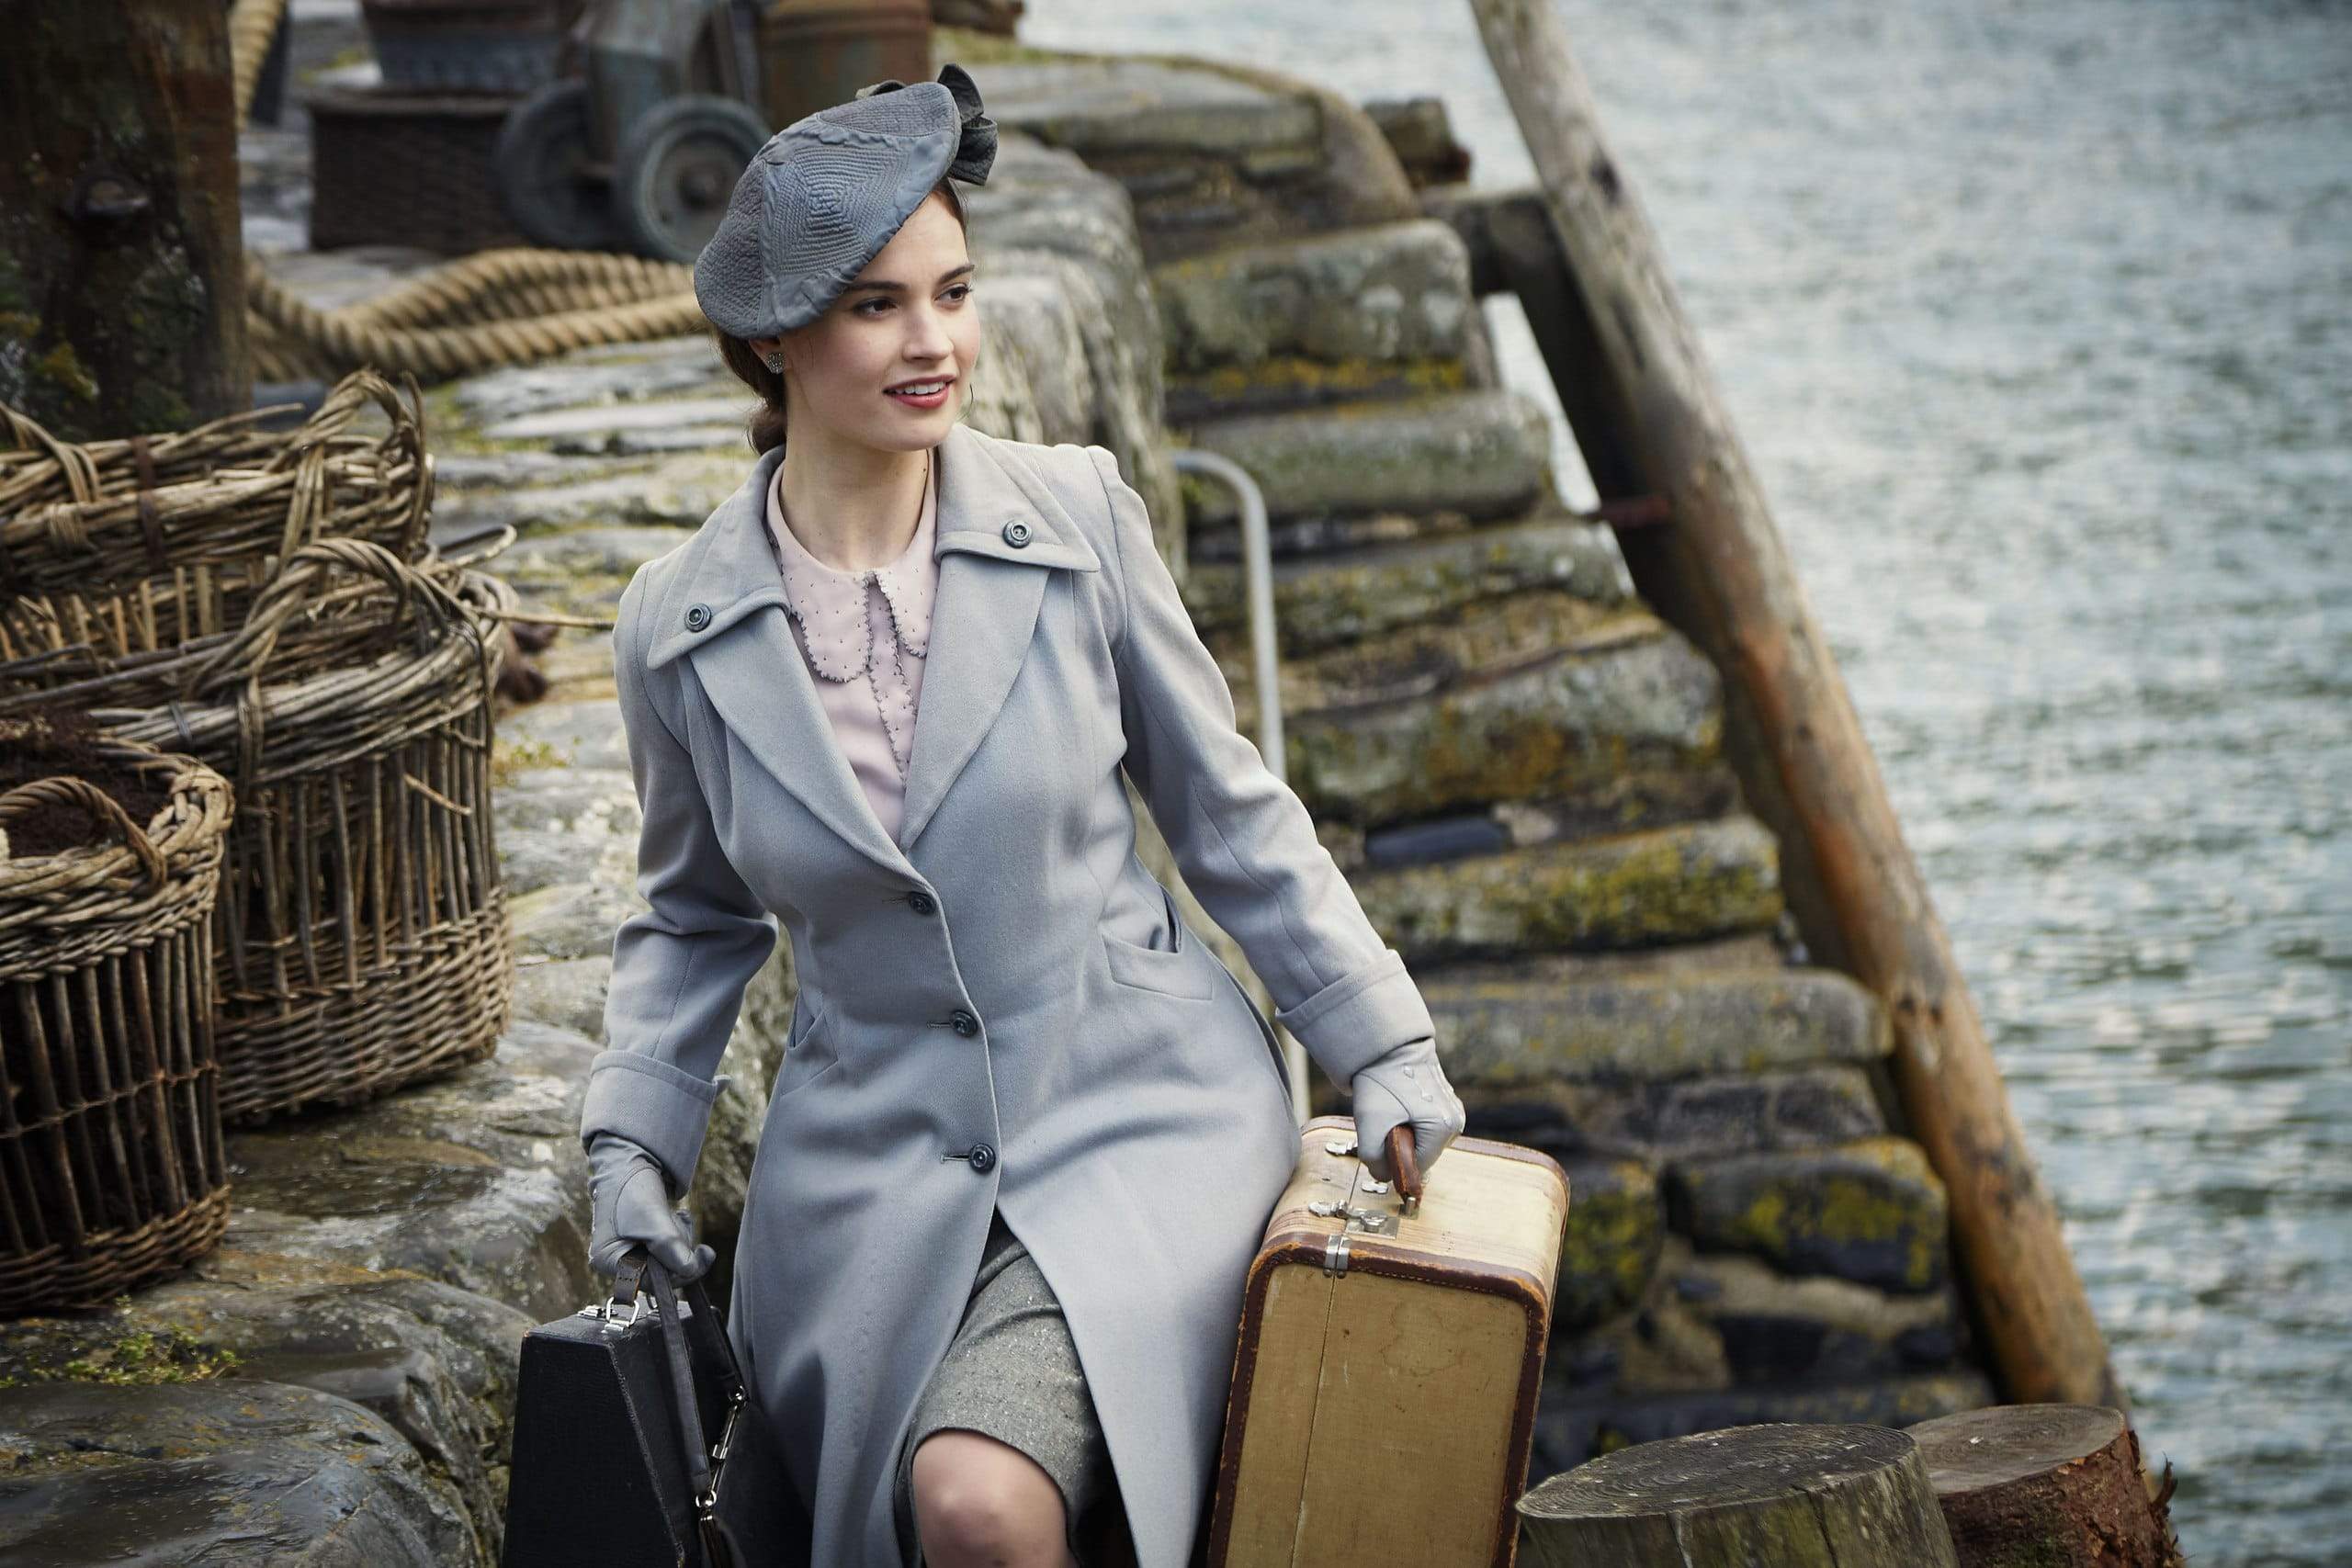 Netflix films with strong female leads: The Guernsey Literary and Potato Peel Pie Society